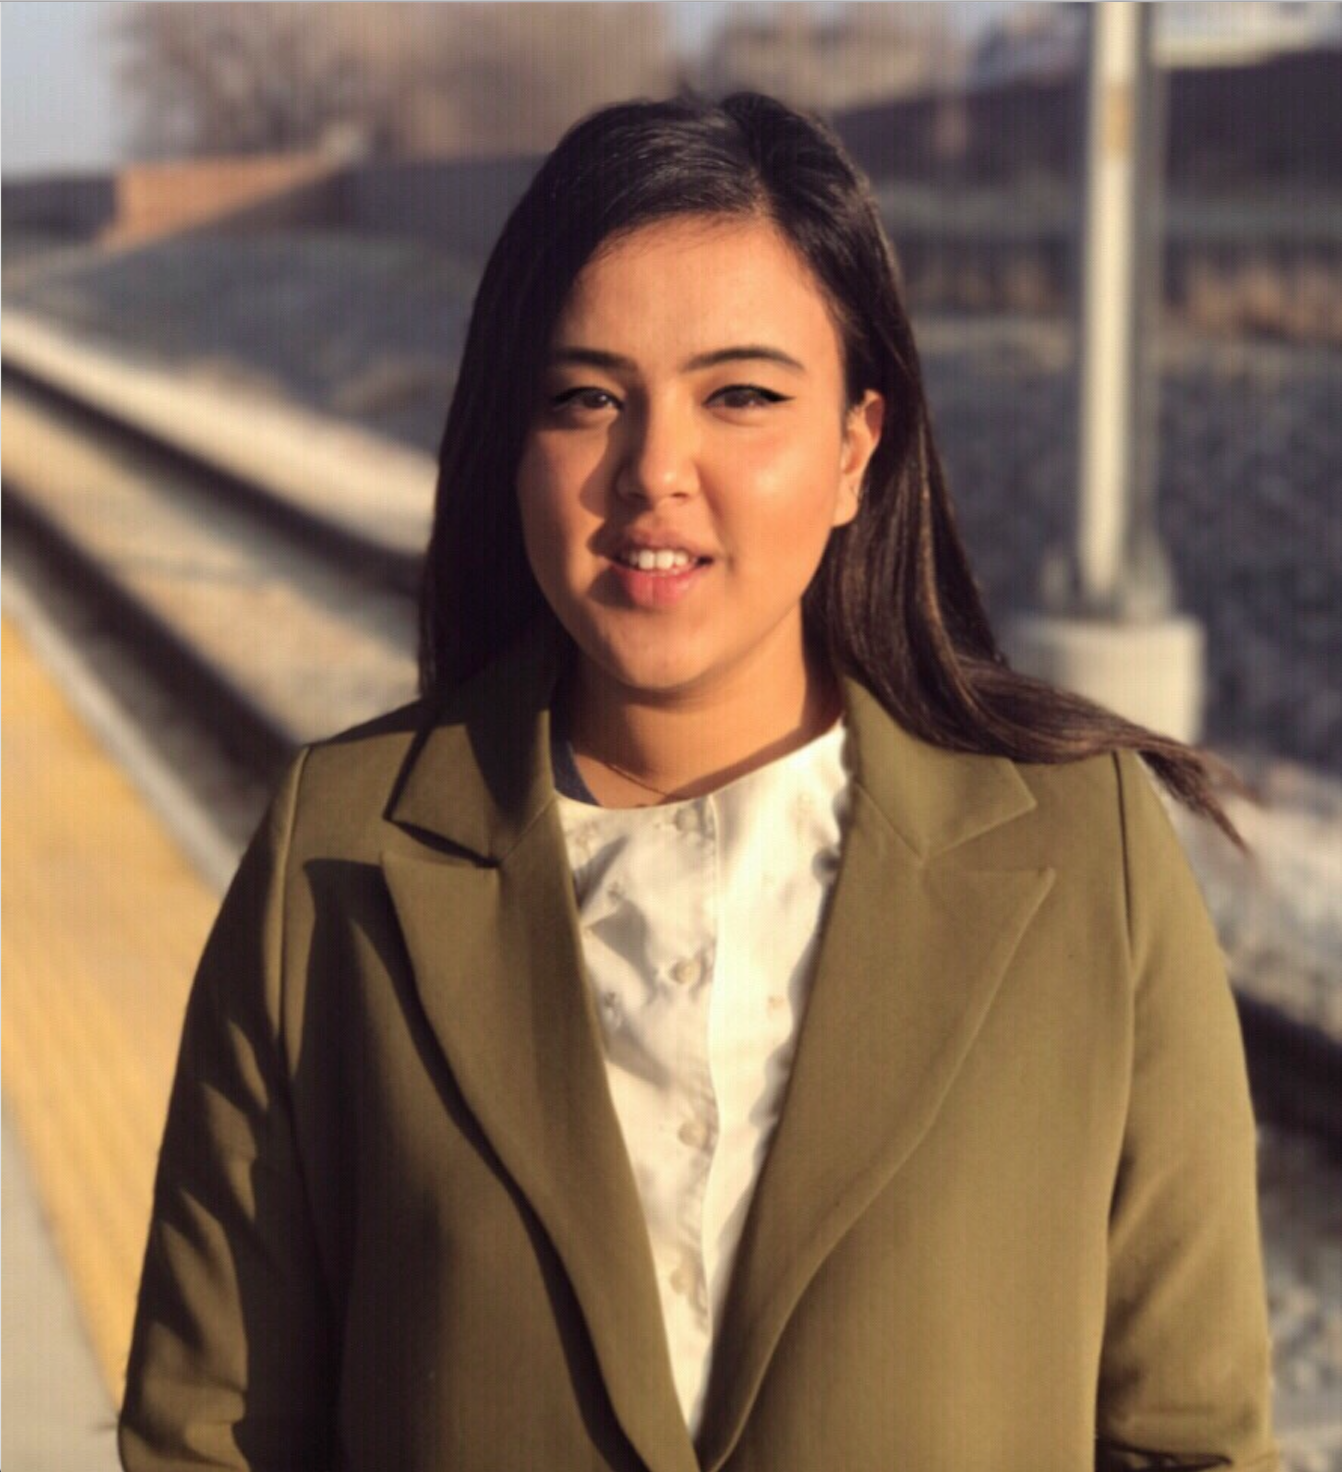 Eccles School junior Dakshata Pradhan was one of an elite group of students chosen to take part in the McKinsey Undergraduate Women's Summit this summer.